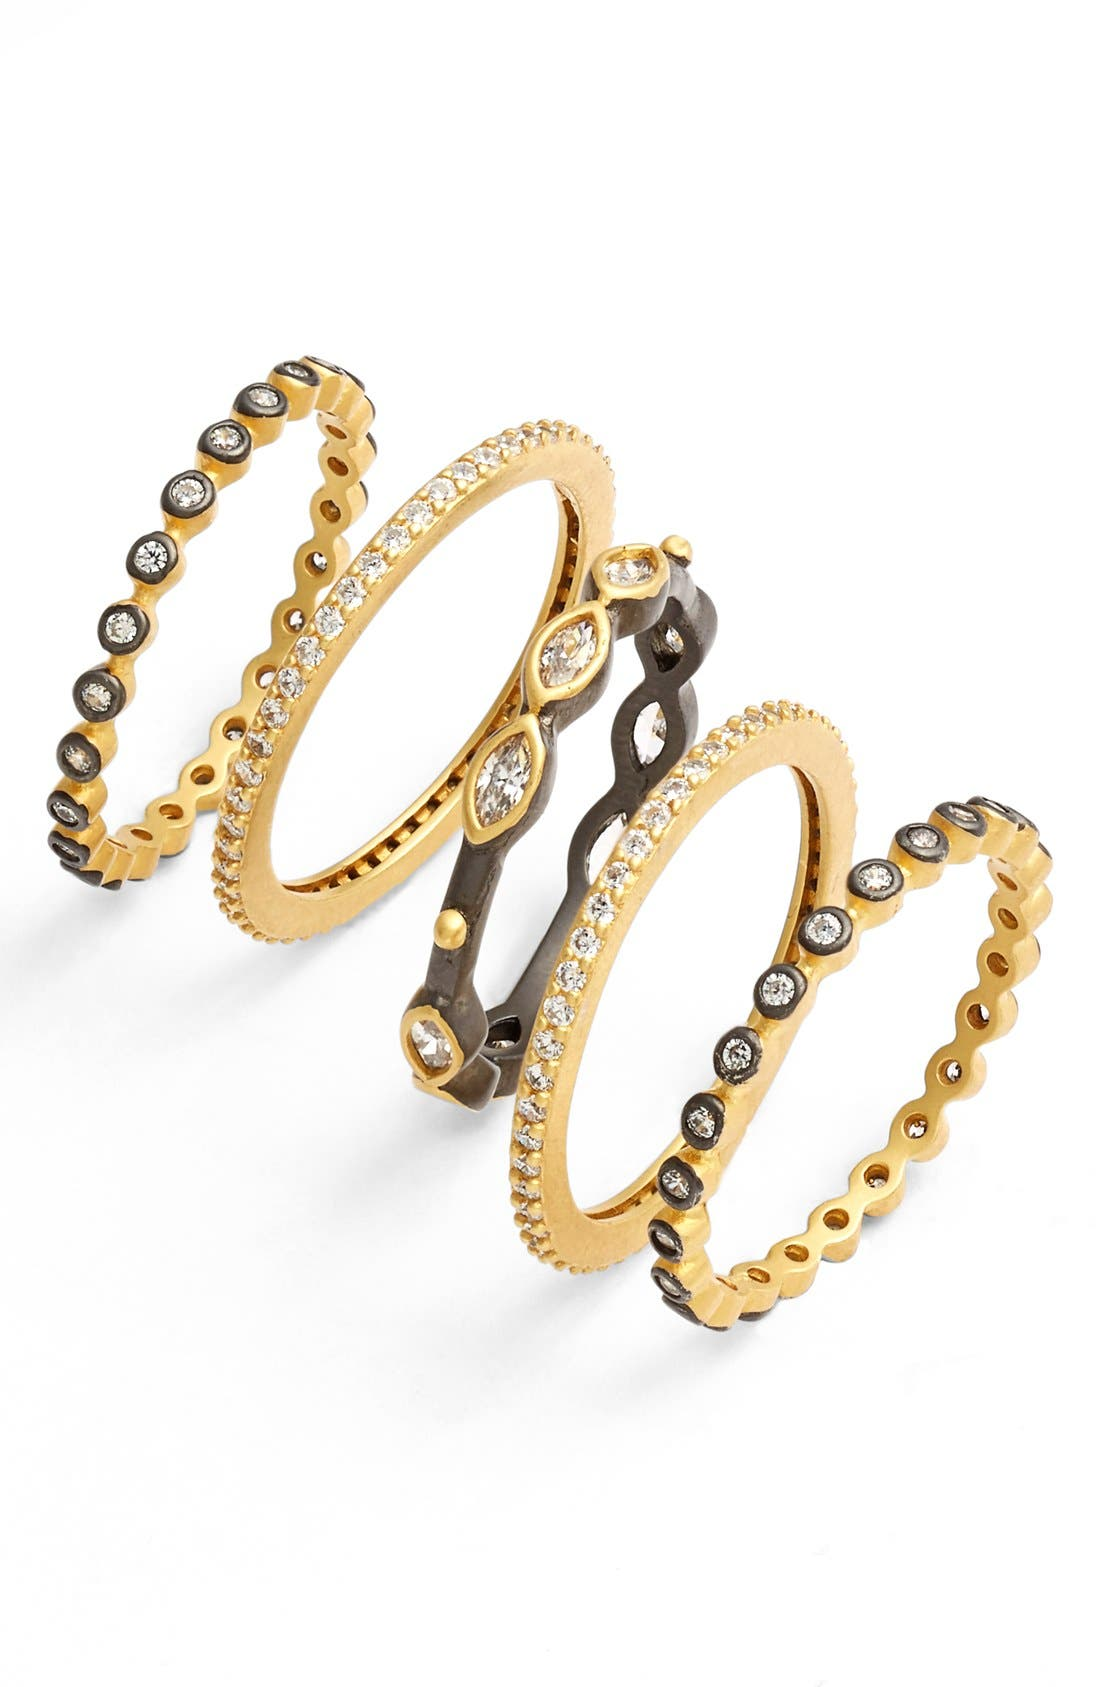 FREIDA ROTHMAN Delicate Stackable Rings (Set of 5)